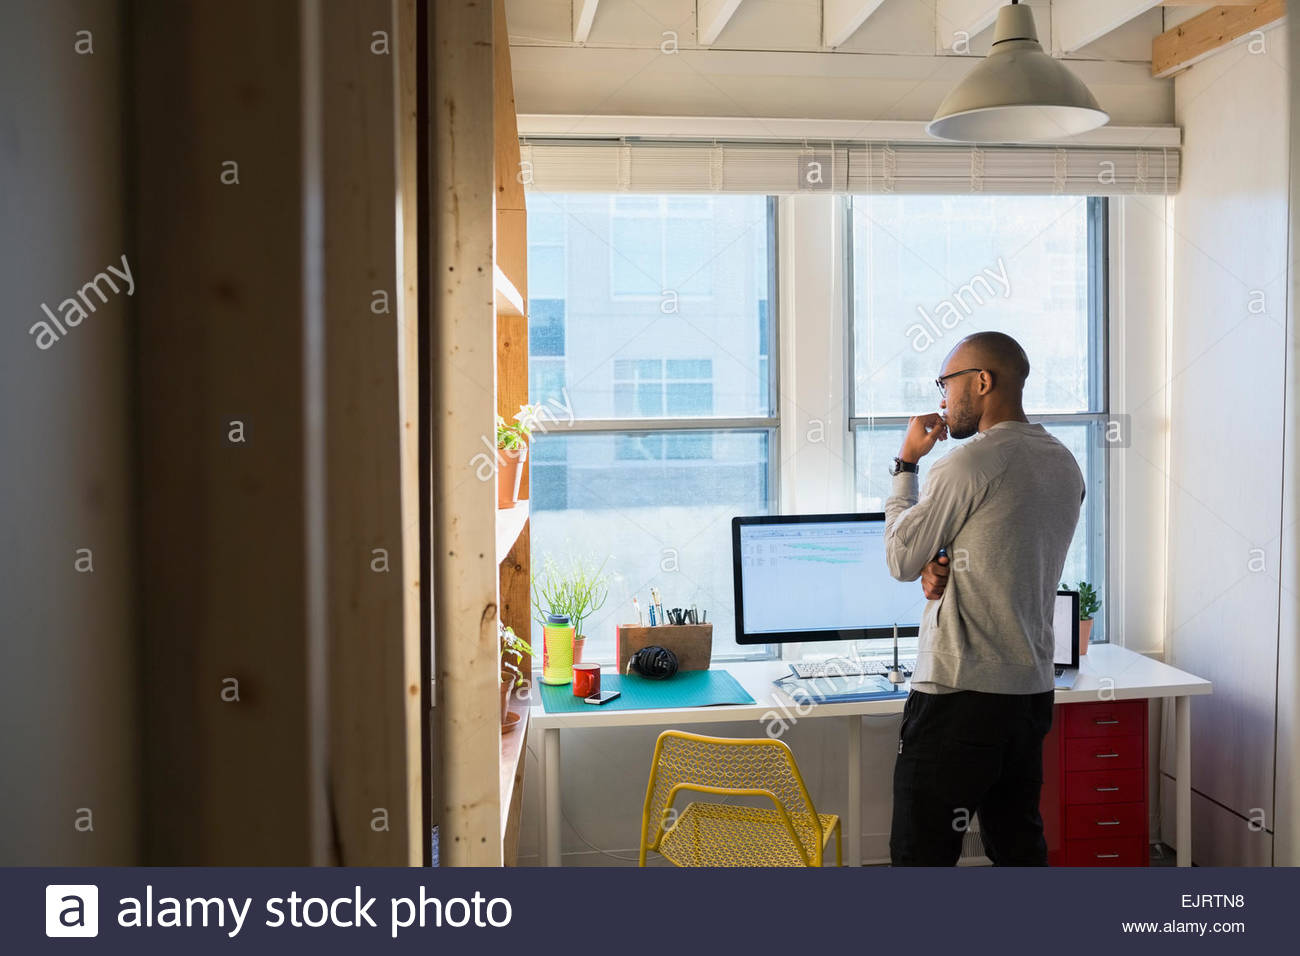 Designer looking out office window - Stock Image